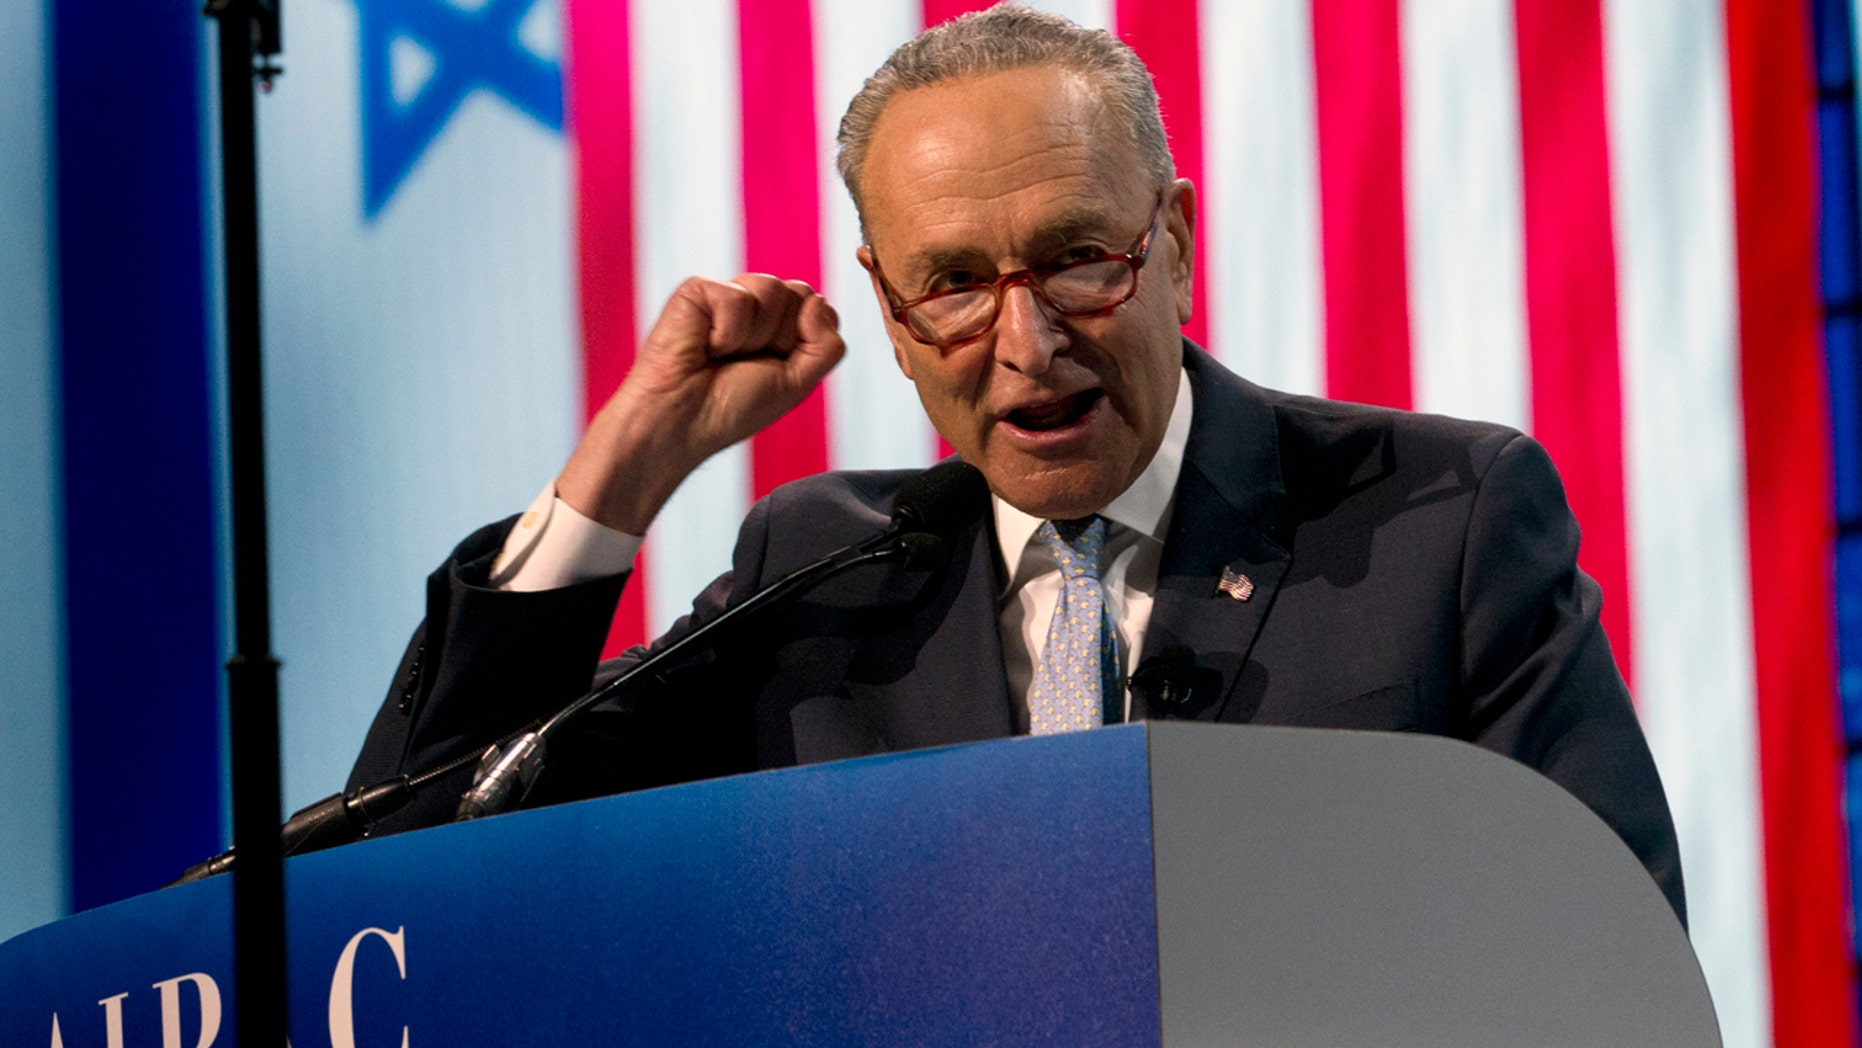 The Senate Minority Leader, Chuck Schumer, D-N.Y., spoke at the Political Conference of the US Public Affairs Committee (AIPAC) on Monday night in Washington. (AP Photo / Jose Luis Magana)